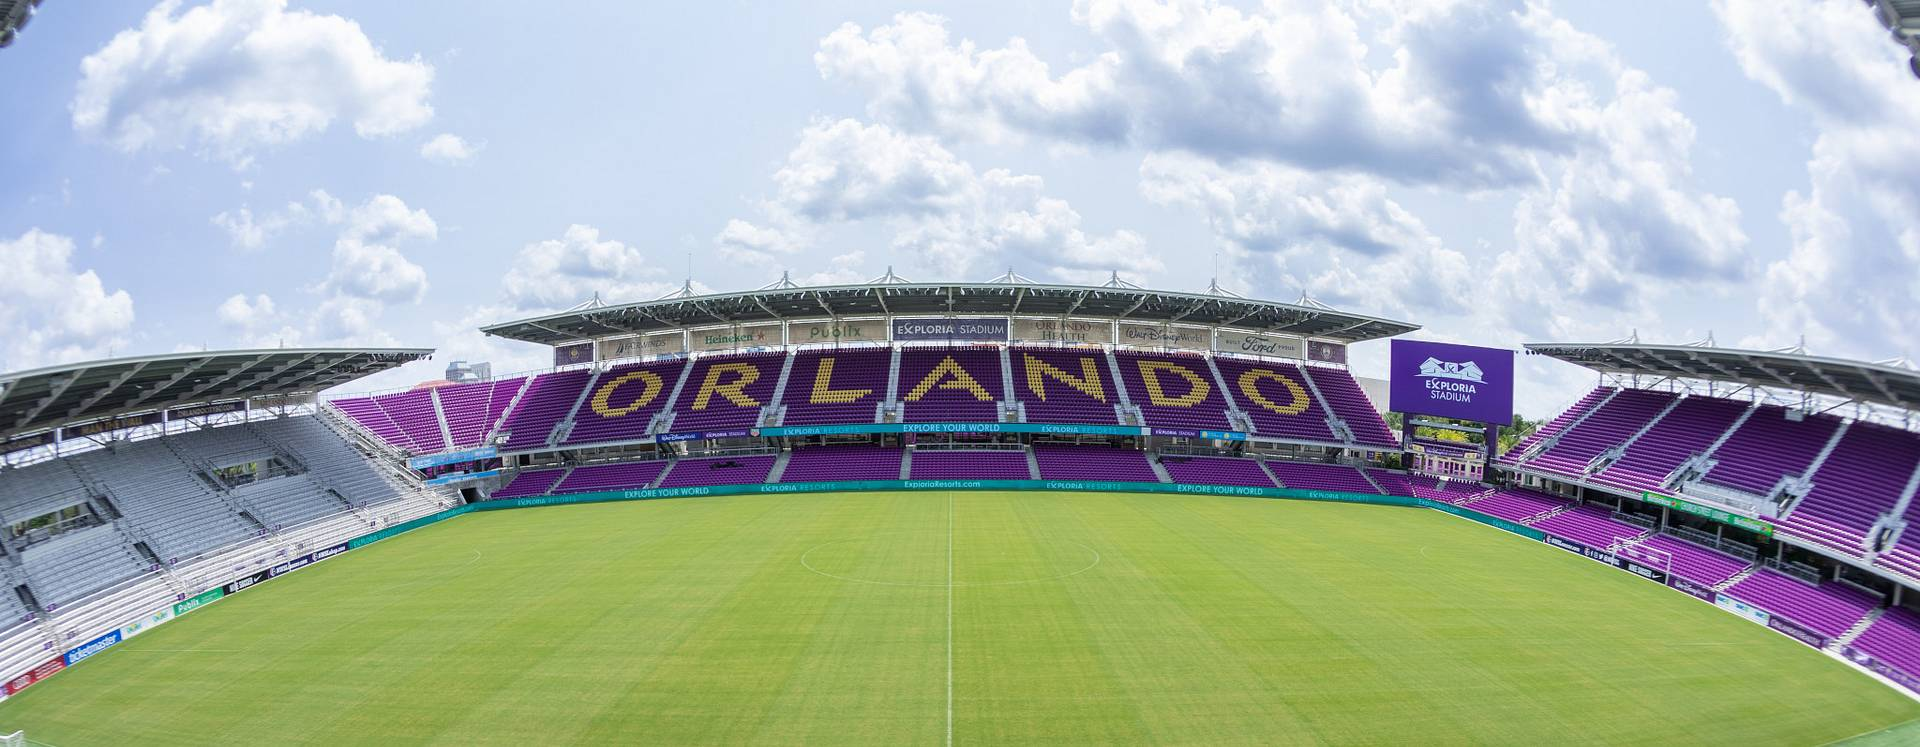 A view of the midfield from the stands inside an empty Exploria Stadium where Orlando City Soccer plays